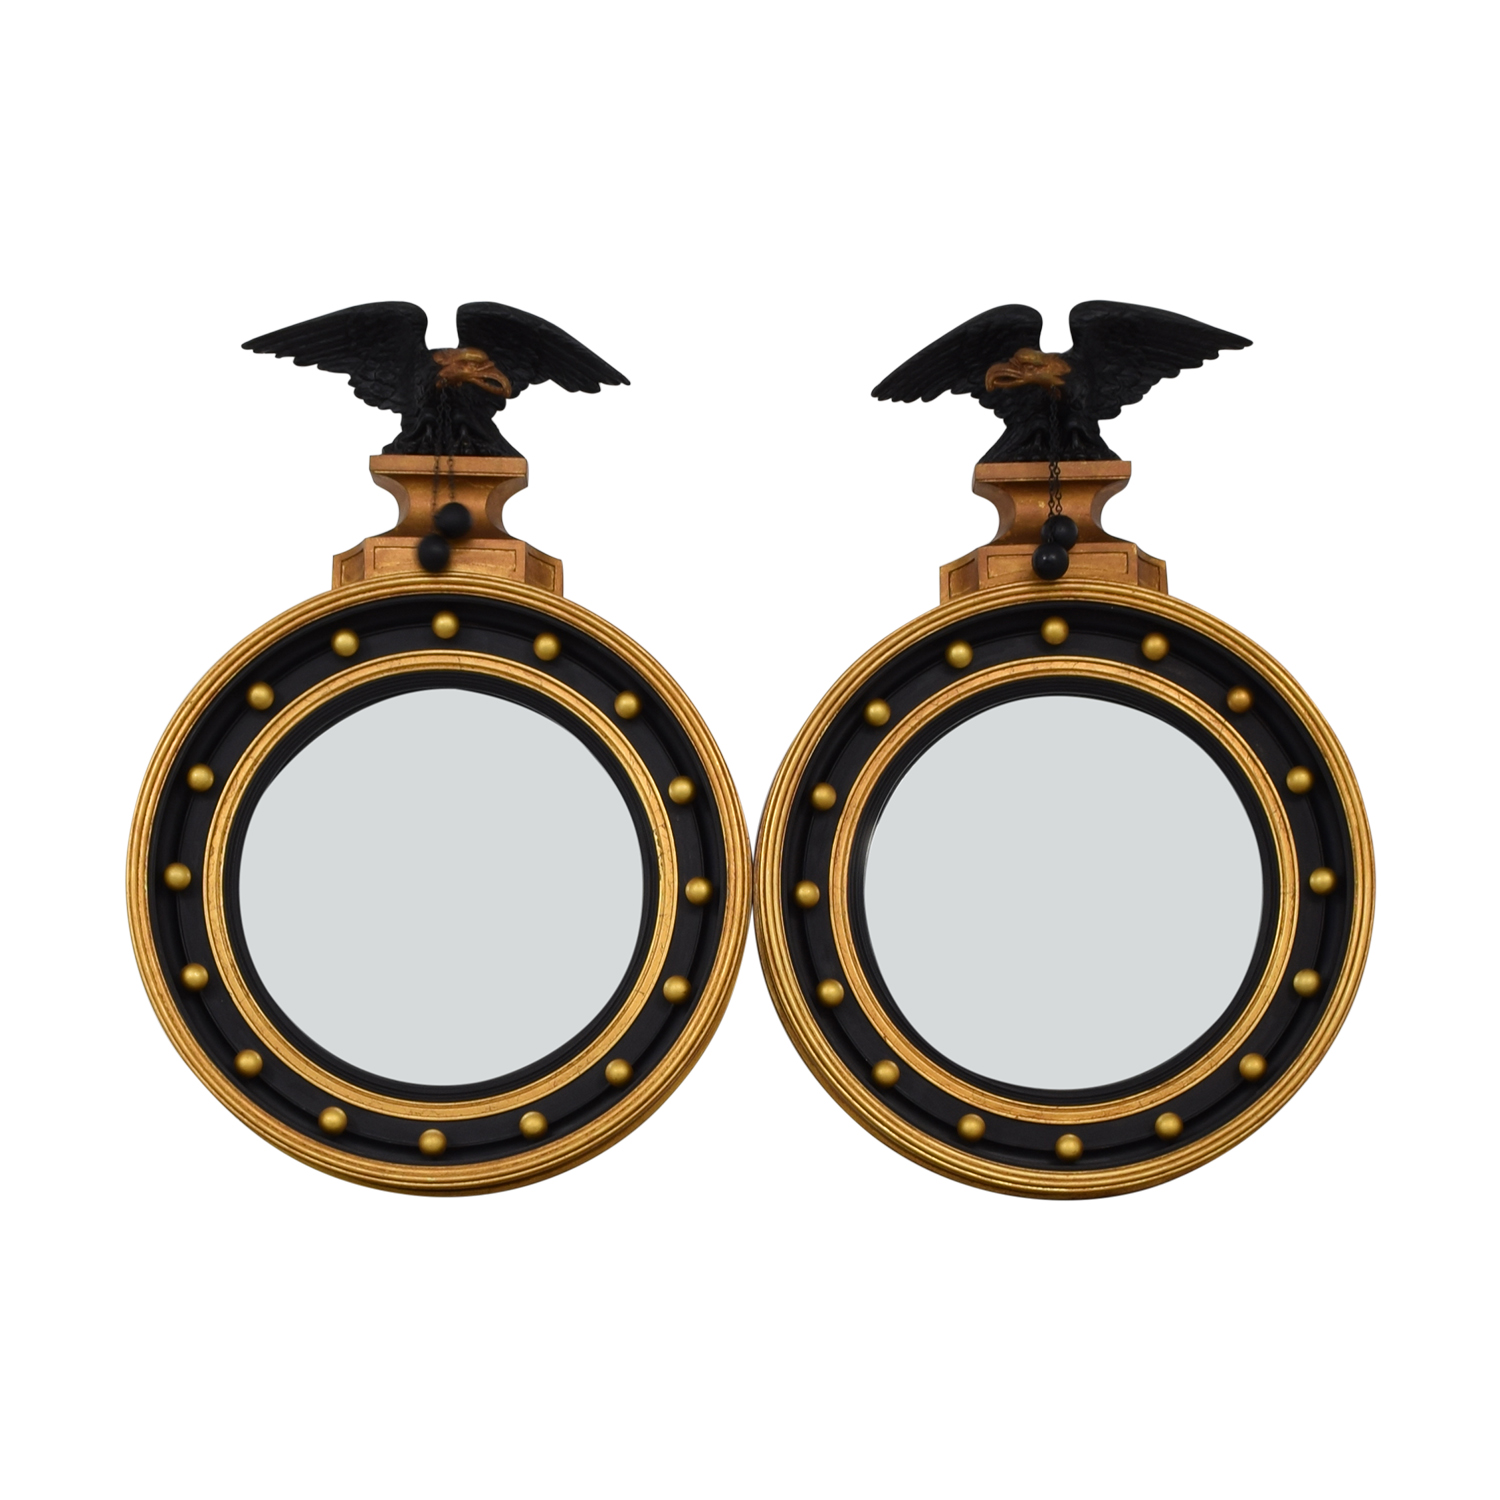 Federal Style Black and Gold Round Mirrors second hand